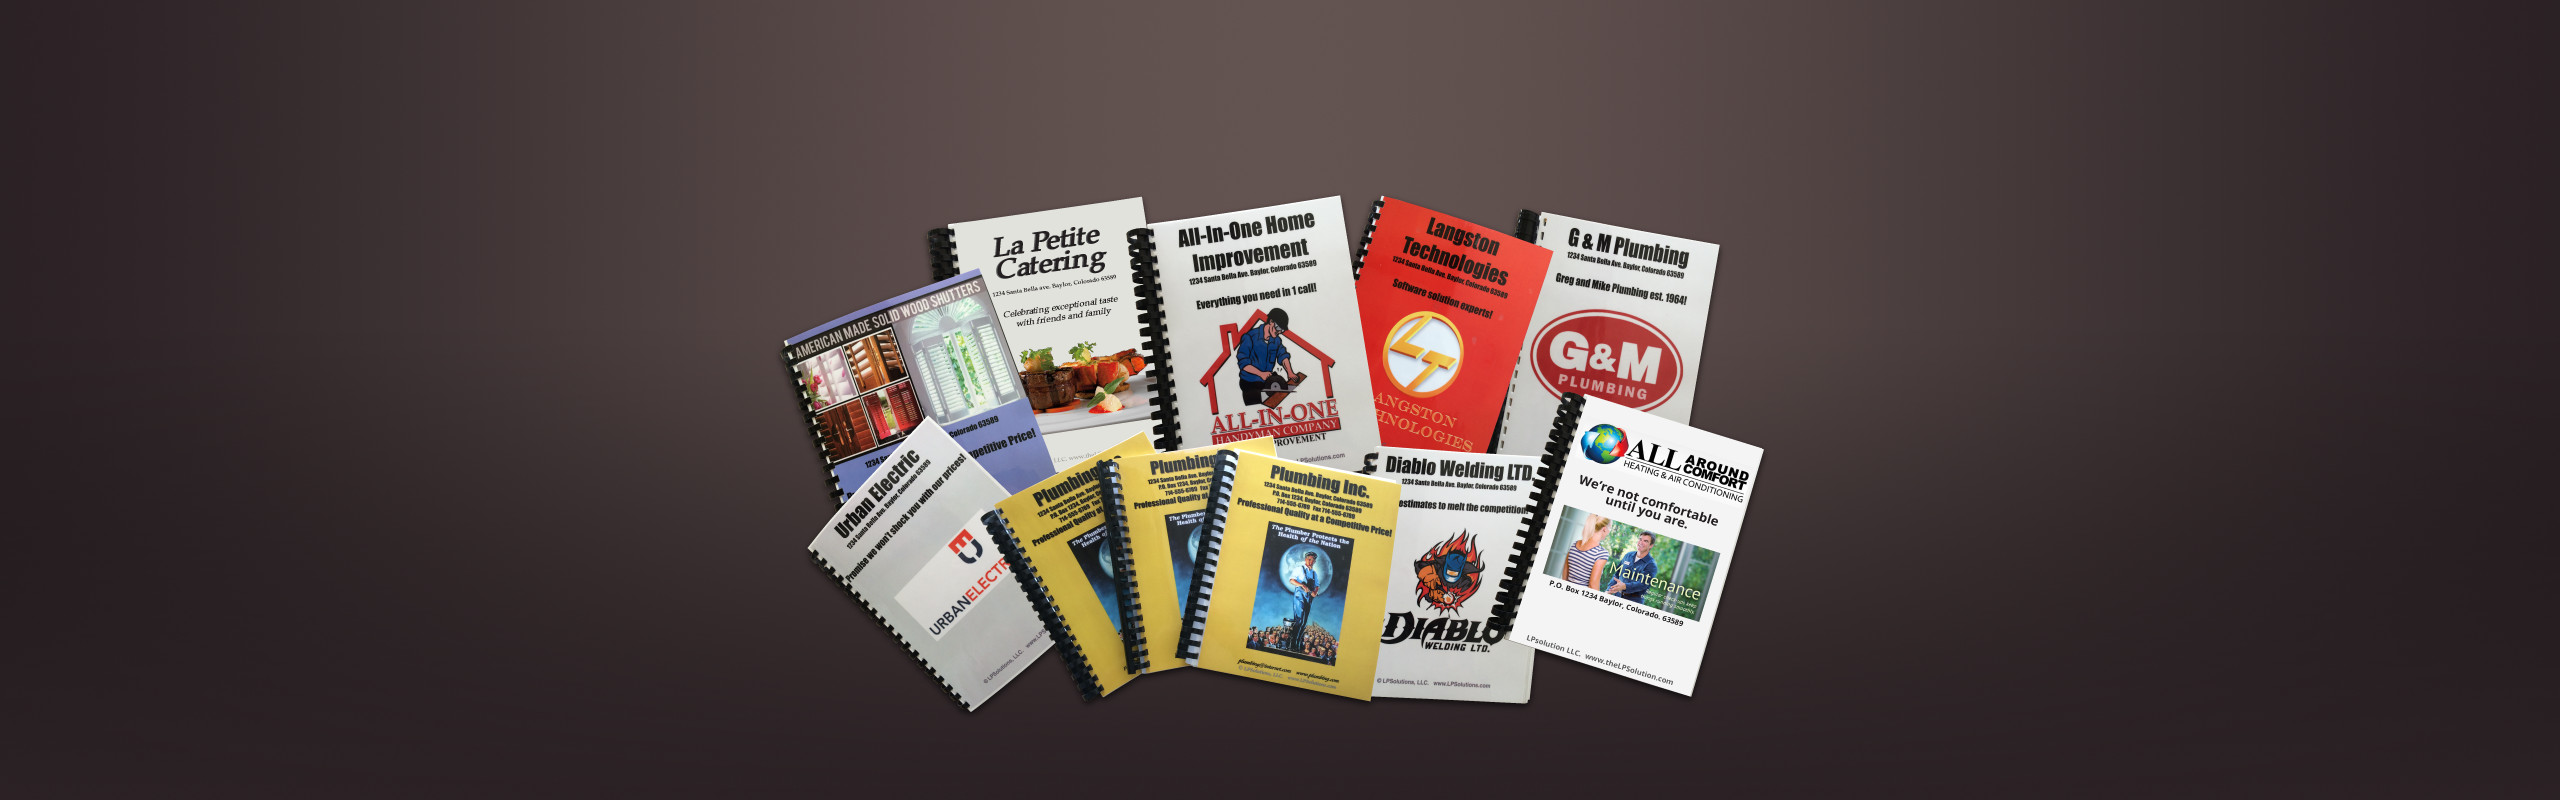 customizable flat rate price books for all service industries displayed on a flat surface